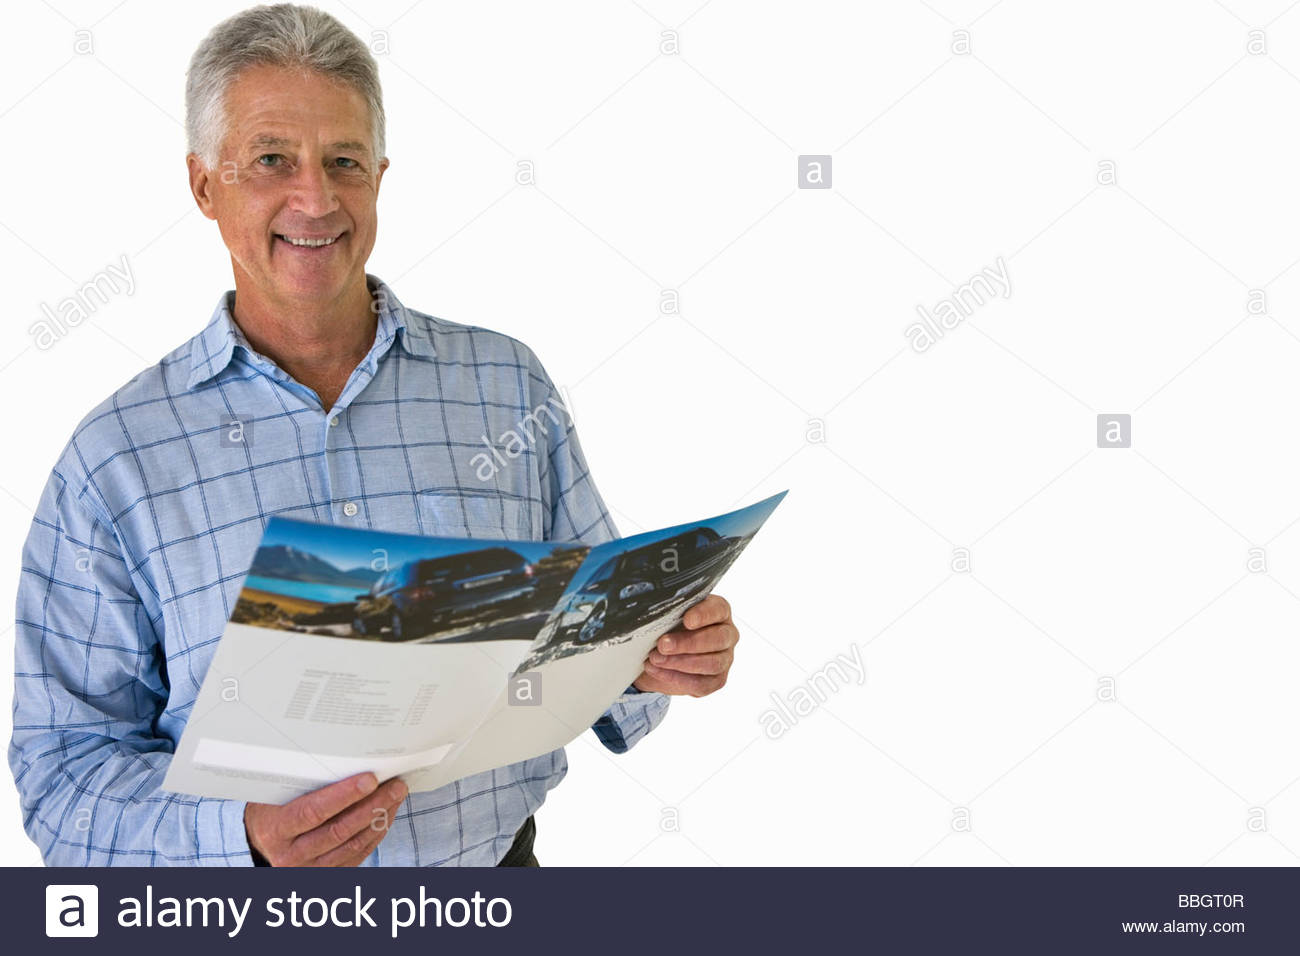 Senior man holding voiture brochure, cut out Photo Stock